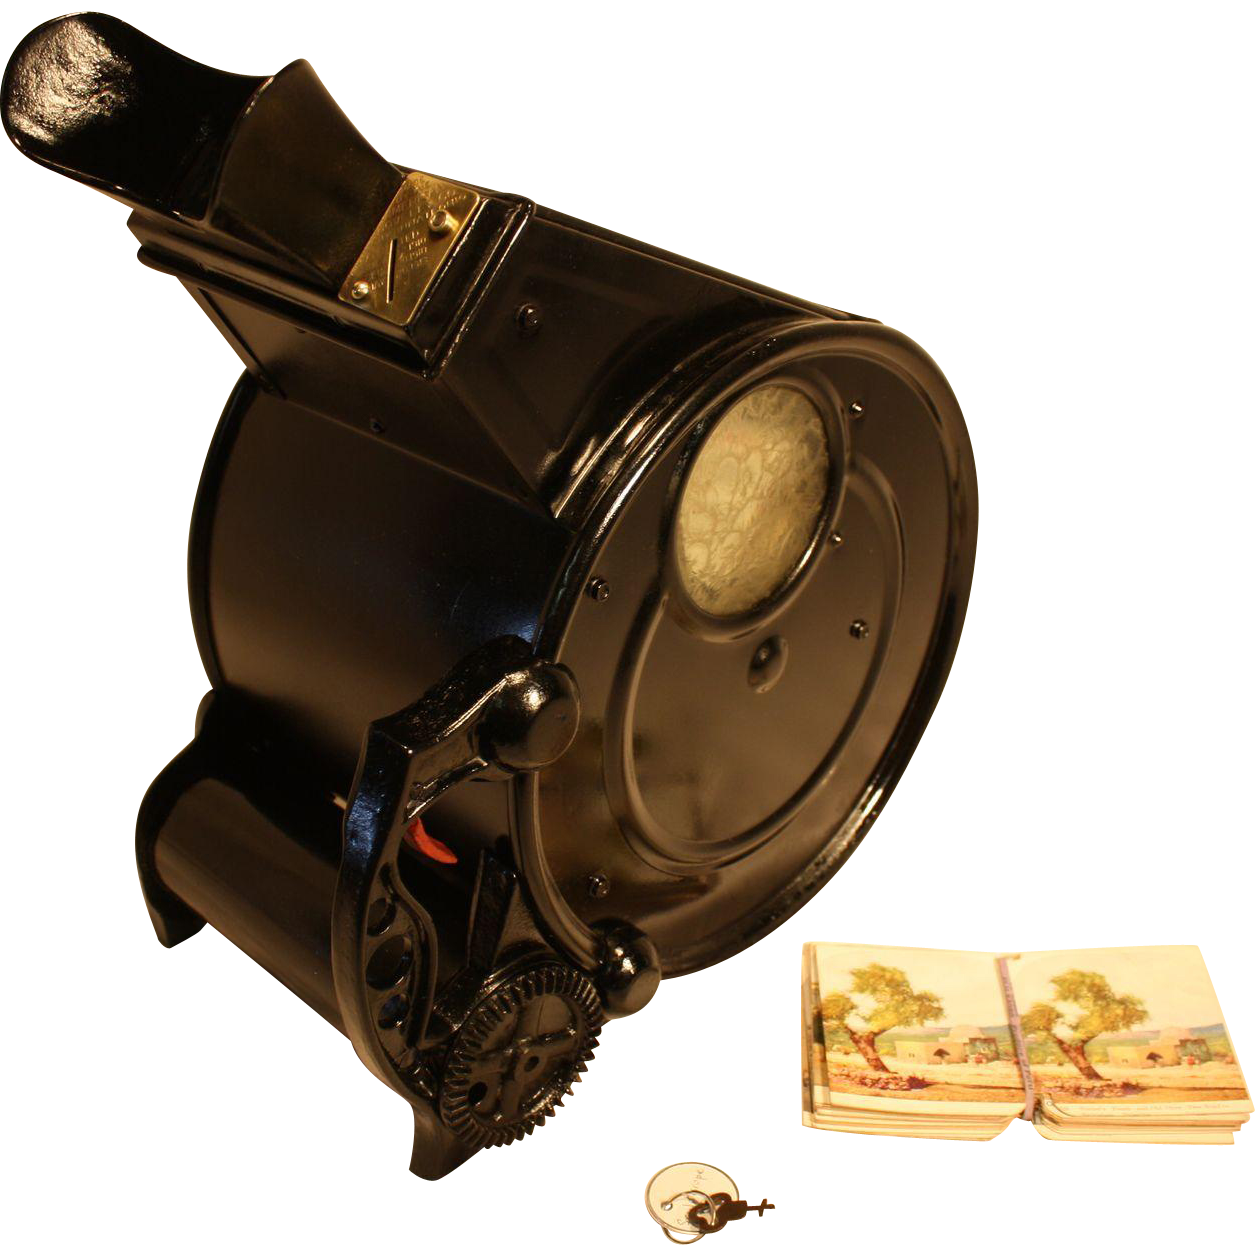 Whiting's Sculptoscope 1¢ Arcade Stereoscope Viewer